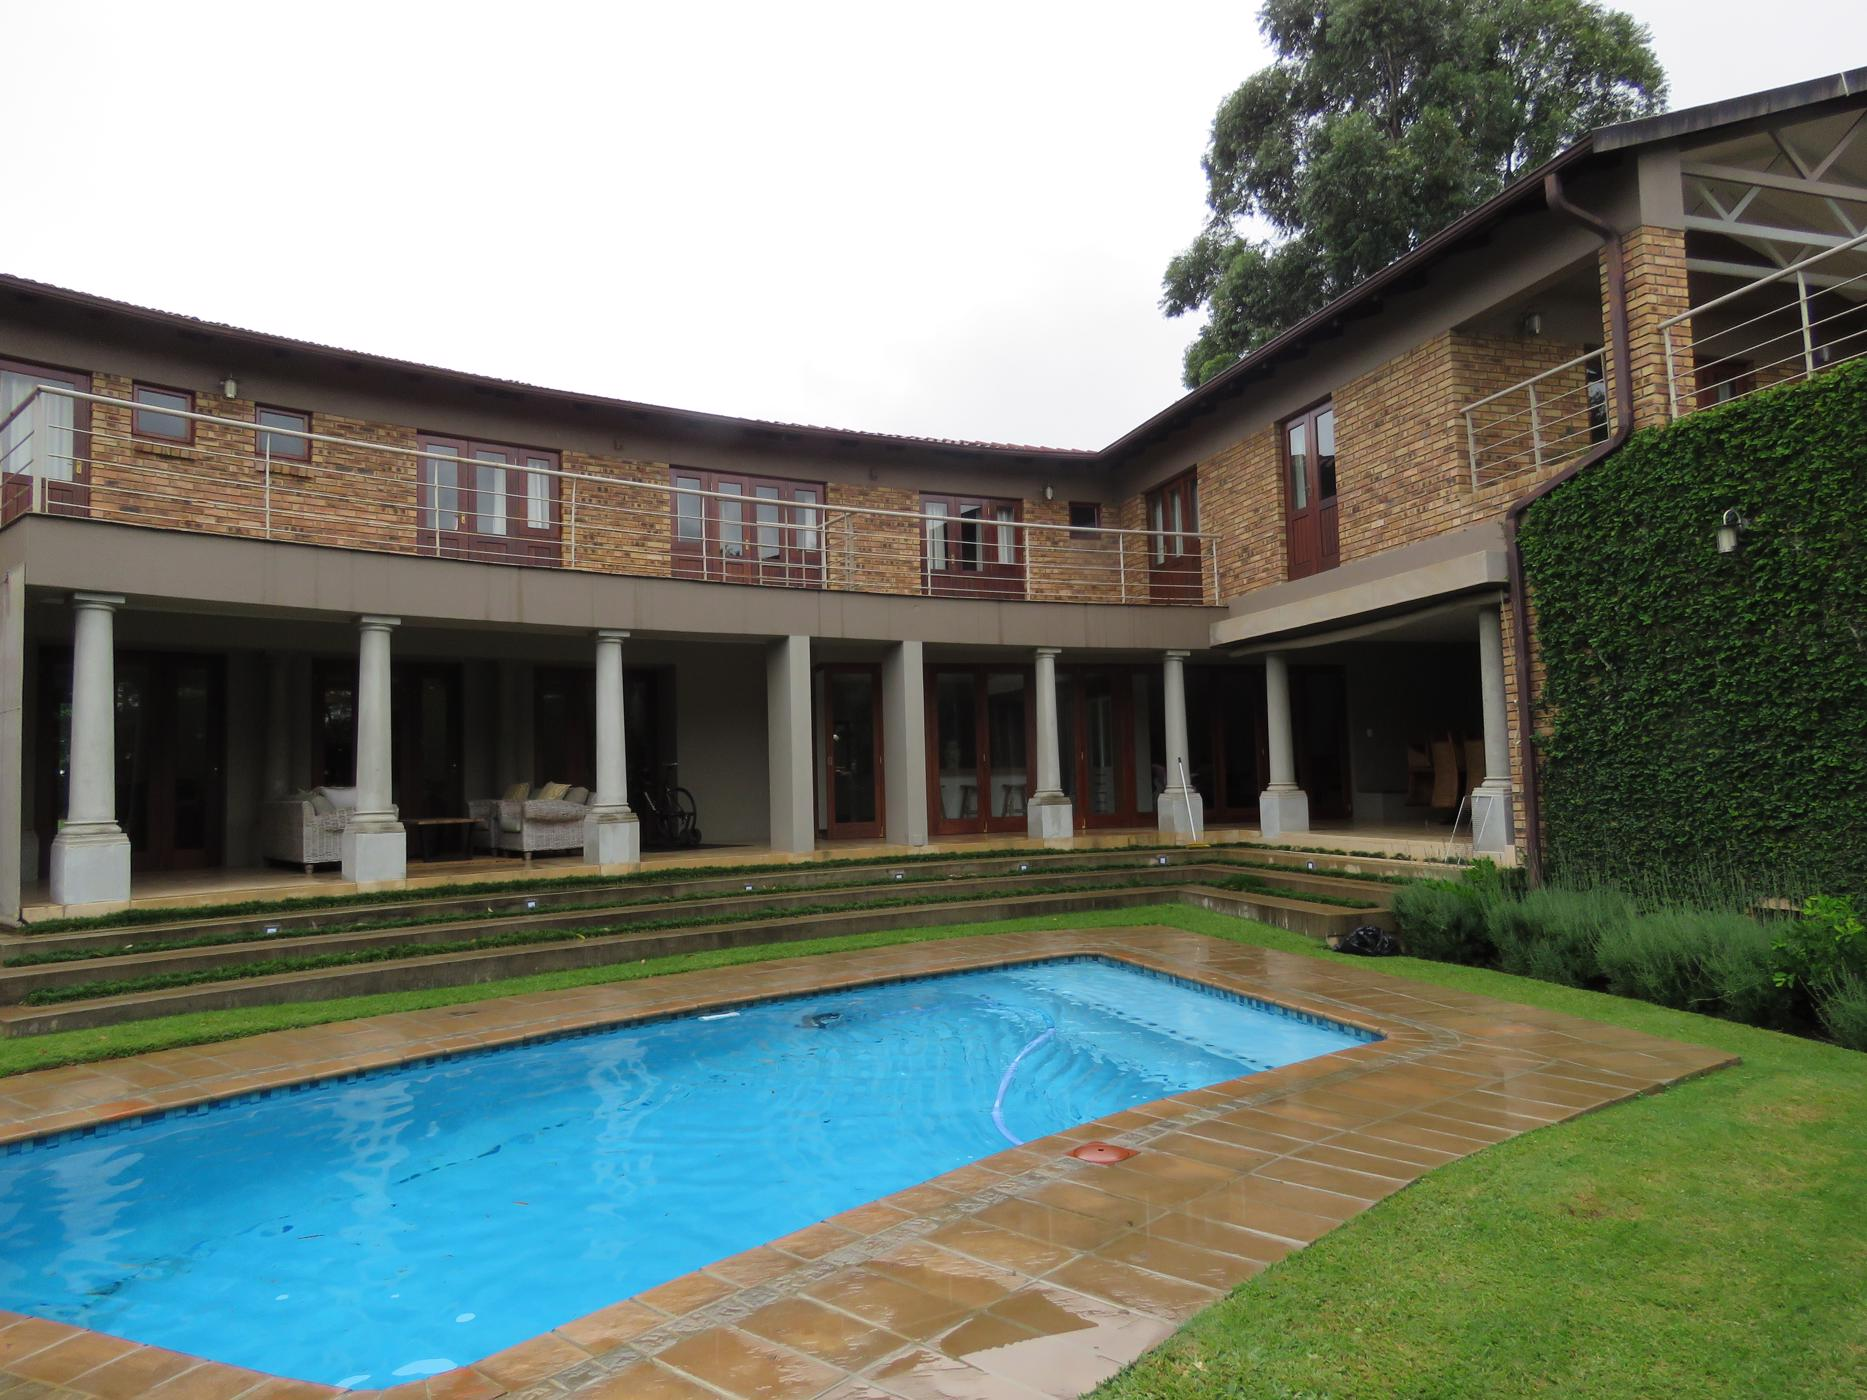 5 bedroom house for sale in White River Country Estate